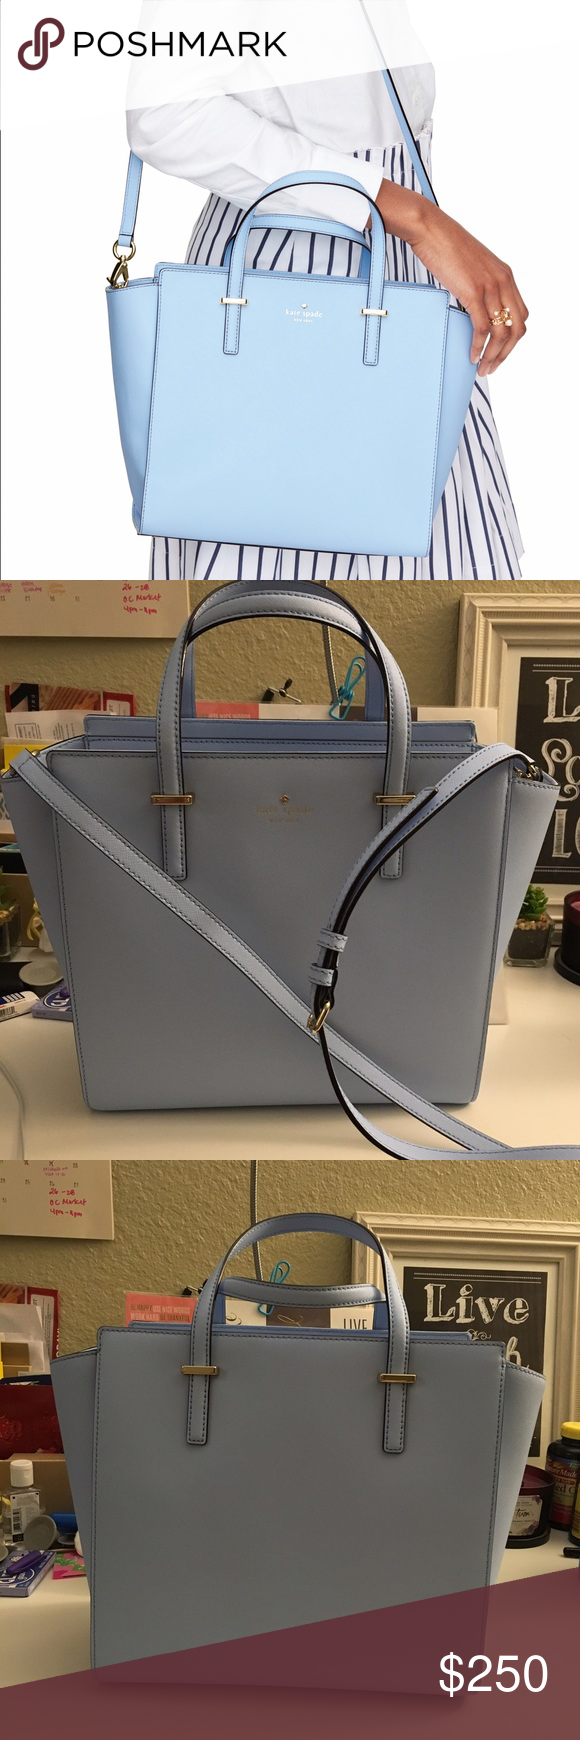 "👜Kate Spade Large Handbag 100% Authentic. Used ONLY once! Like new. Got it 2 months ago at Kate Spade. I recently bought a smaller version 😍. Will not include the dust bag. The color is sky blue. Trust me, the color is beautiful 😍. No trade. No low ball offers. Thank you!  SIZE 10''h x 11''w x 5''d drop length: 5"" handheld, 18.5-20.5'' adjustable strap  MATERIAL crosshatched leather with matching trim 14-karat light gold plated hardware custom woven caroleena spade dot lining kate spade…"